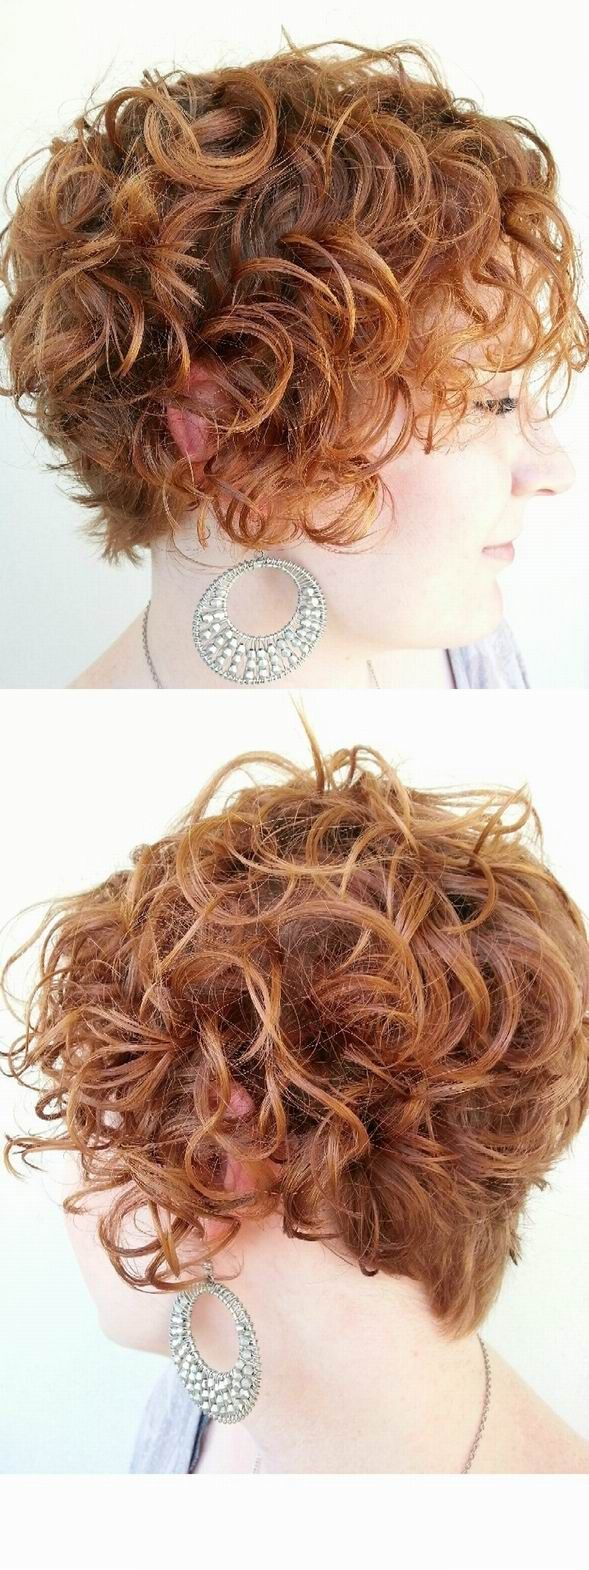 Second Day Curly Hairstyles 25 Best Ideas About Easy Curly Hairstyles On Pinterest Hair